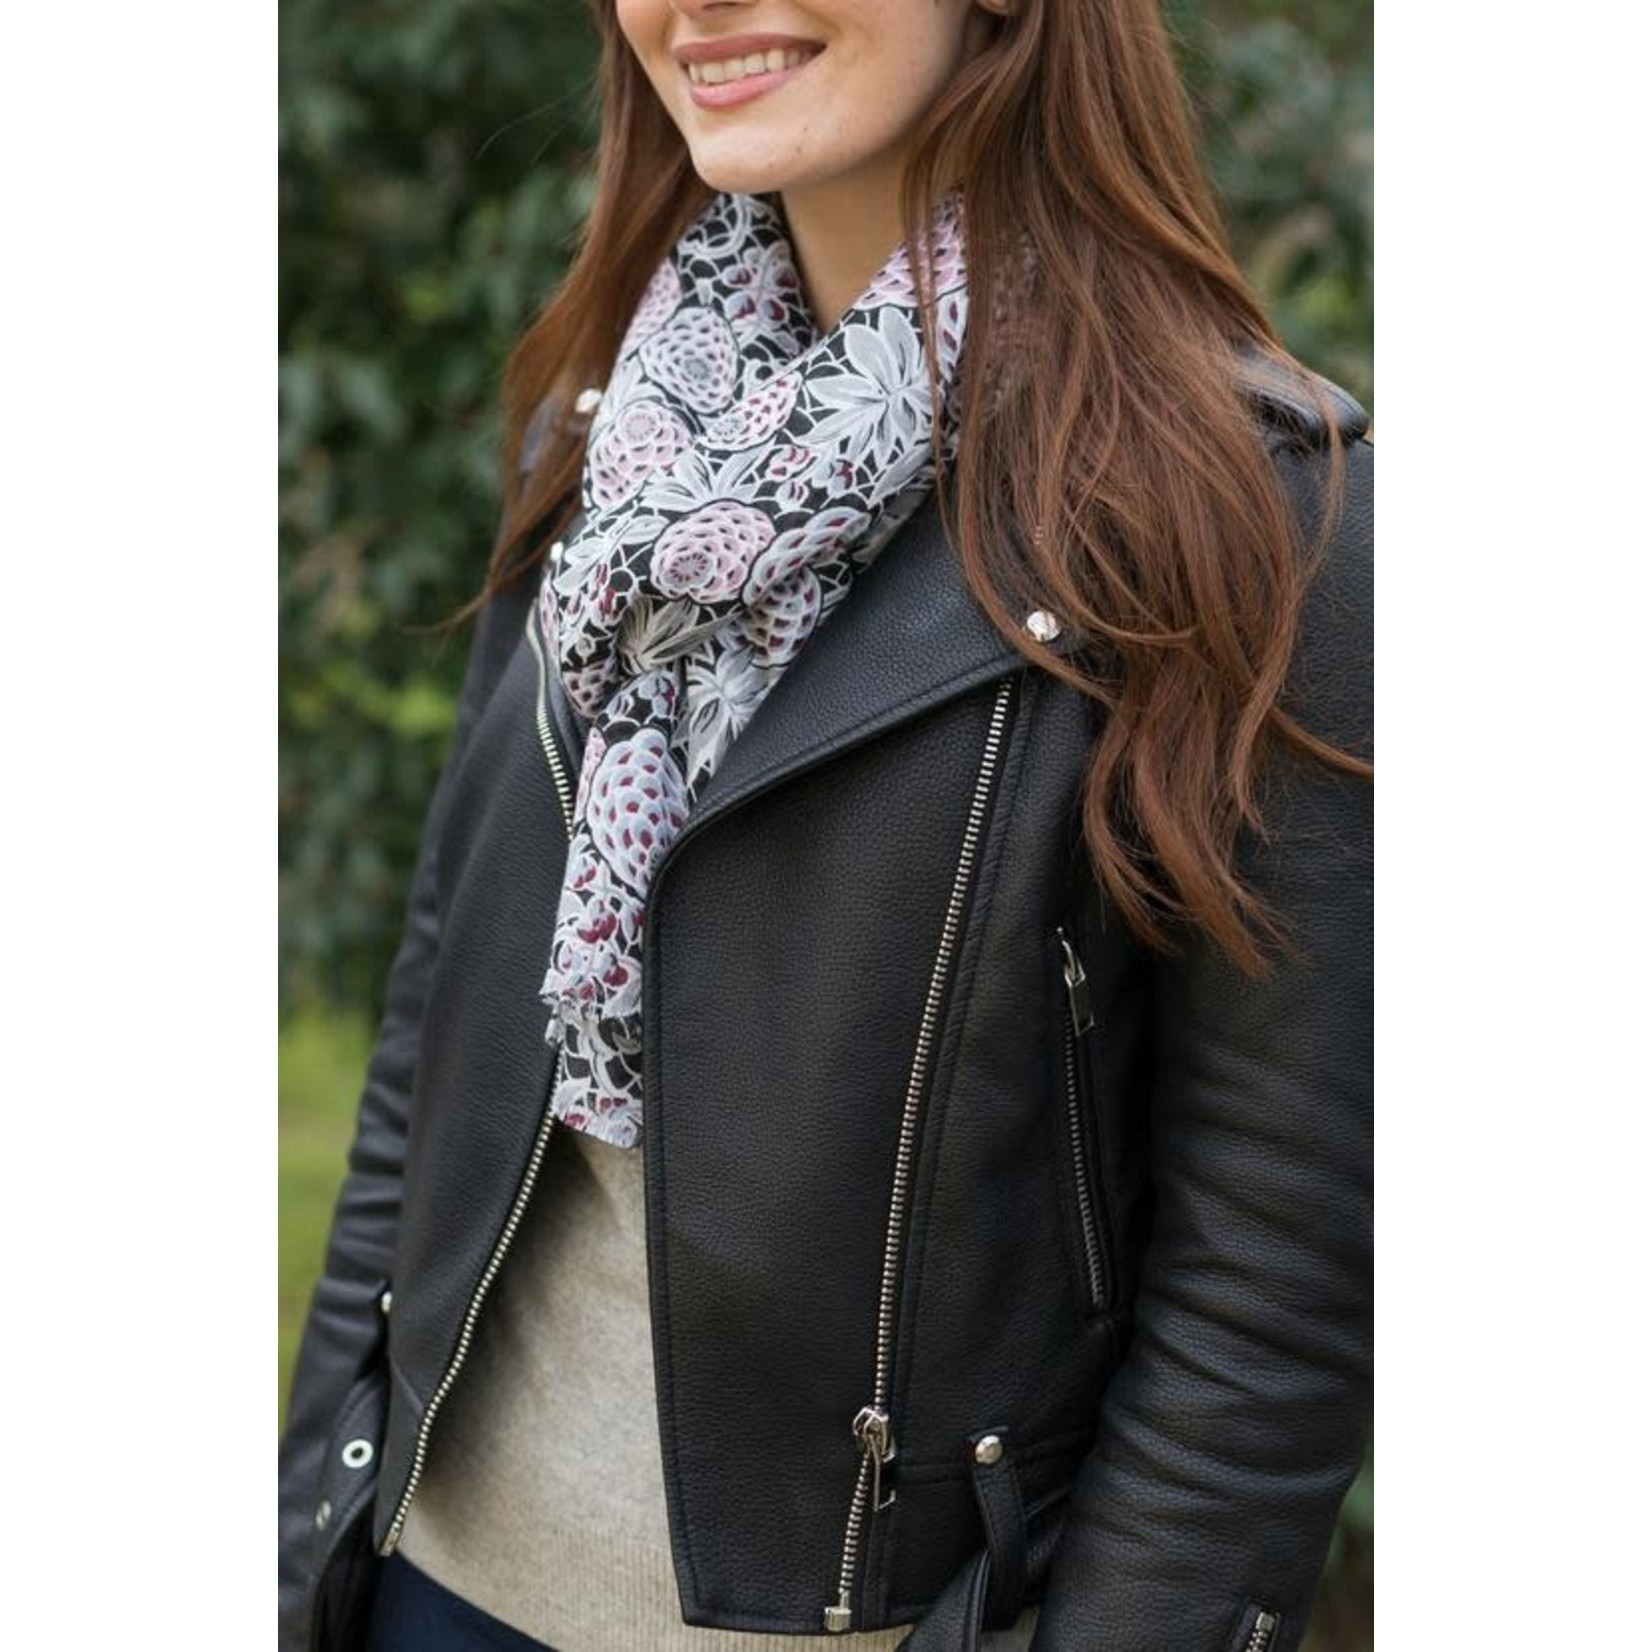 Peony Accessories Pinecones Scarf in Charcoal